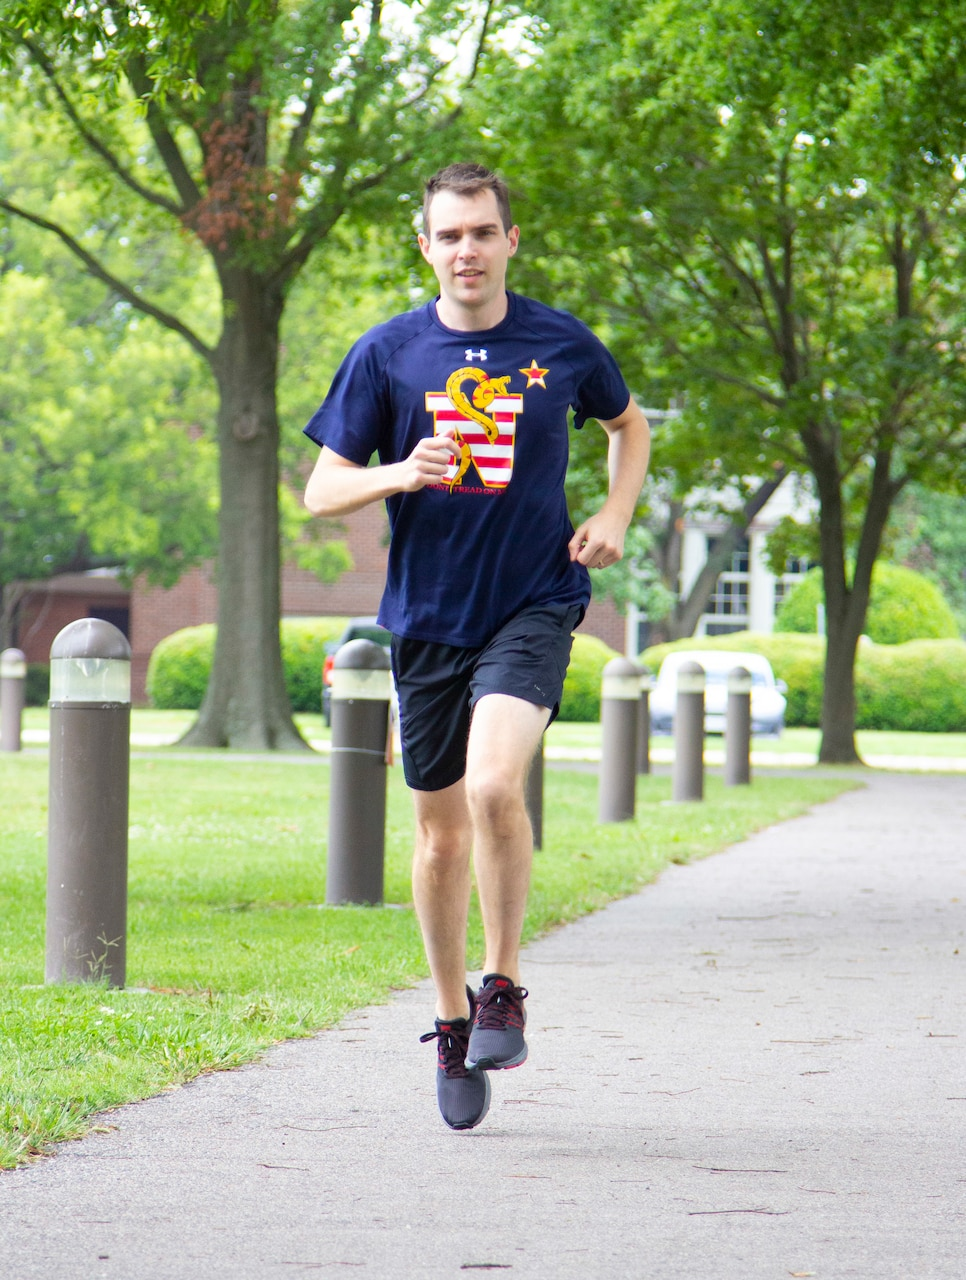 Lt. John Miller is credited with saving two lives while on an evening run near his residence.